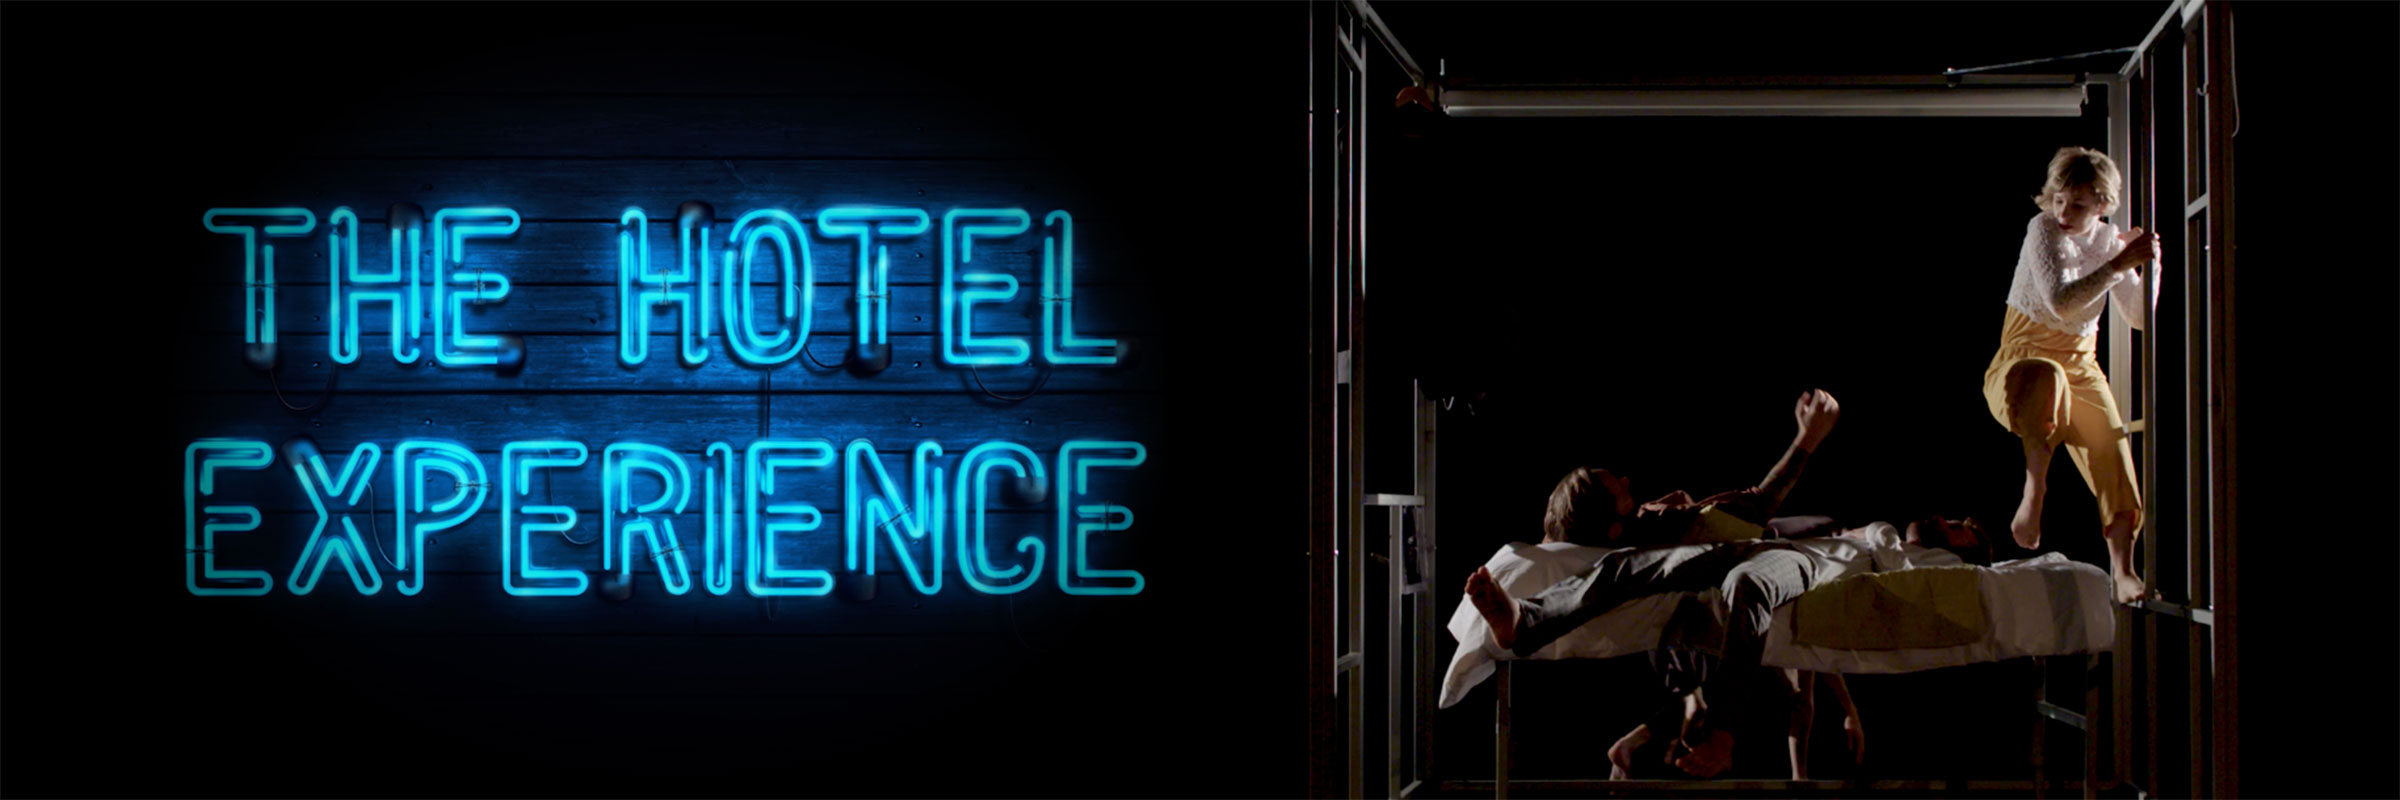 the-hotel-experience, lila dance